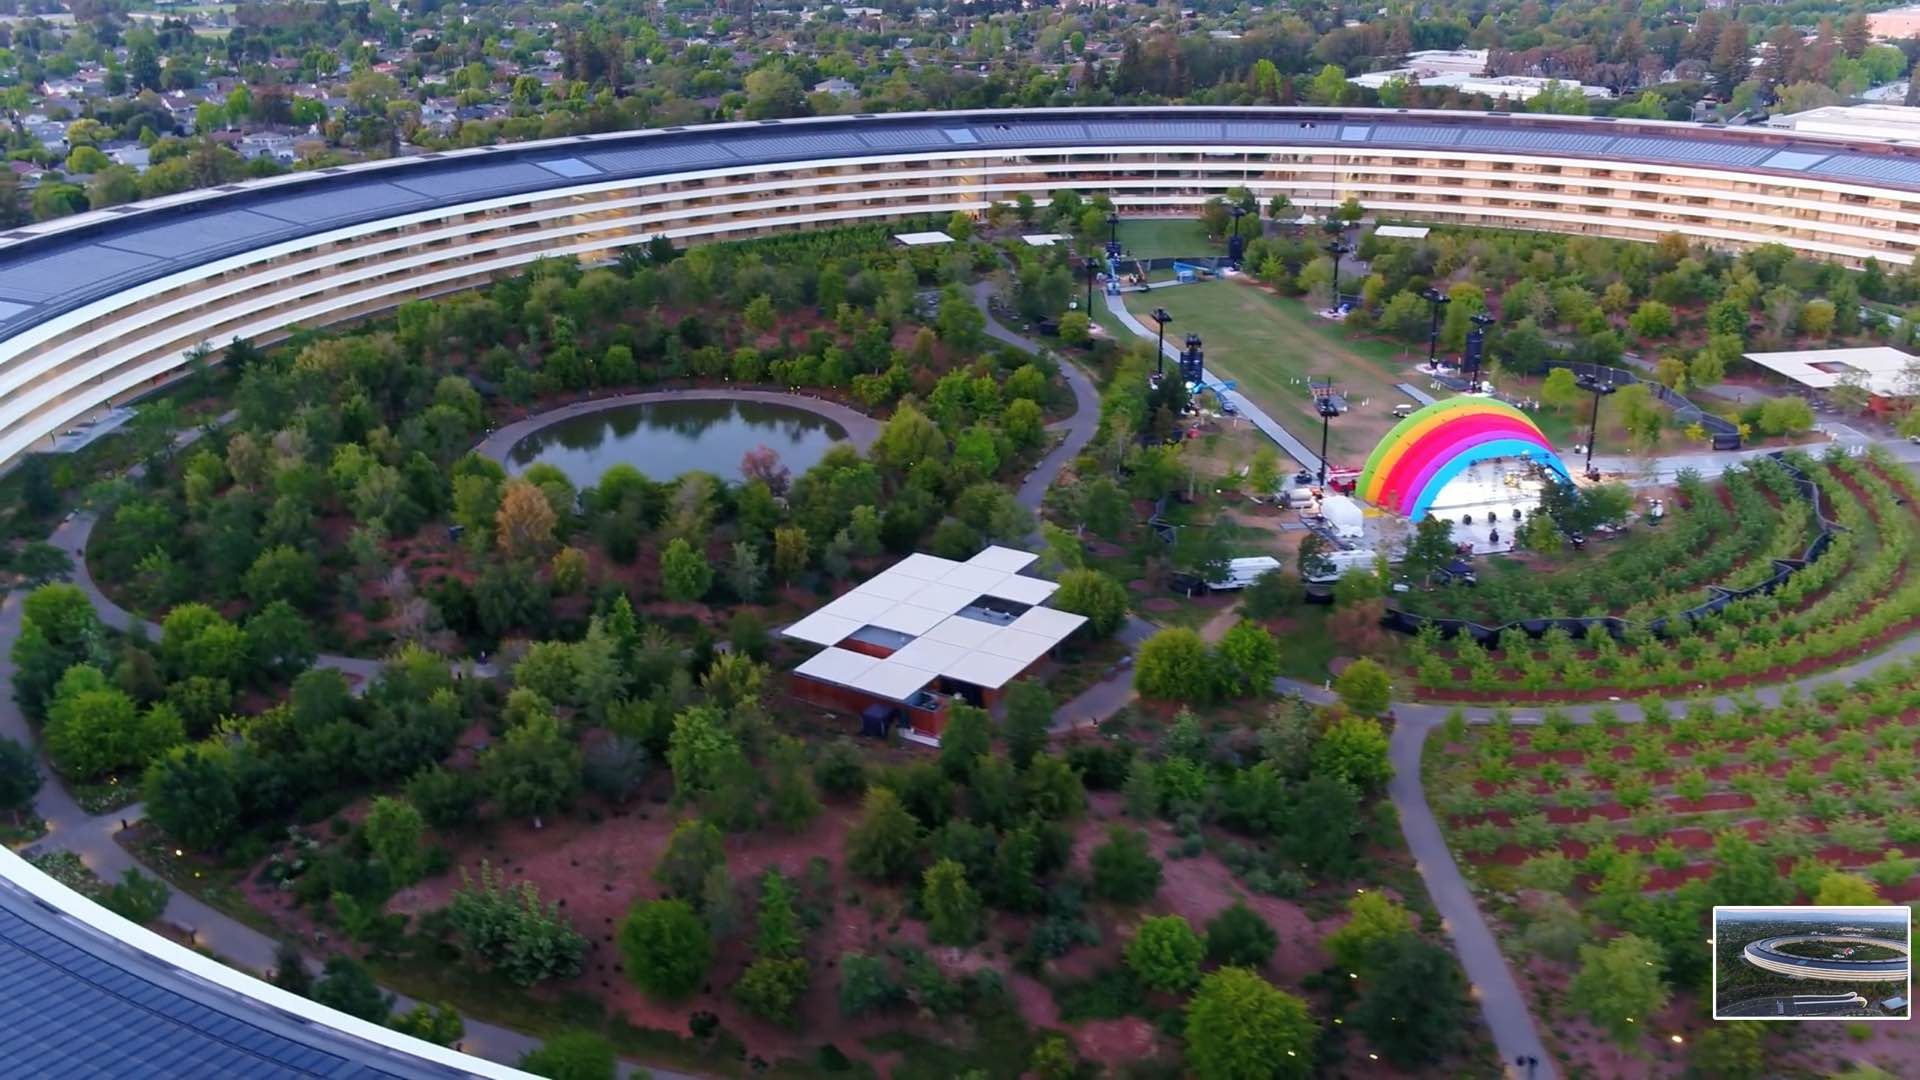 Apple has erected a giant rainbow-colored stage in the